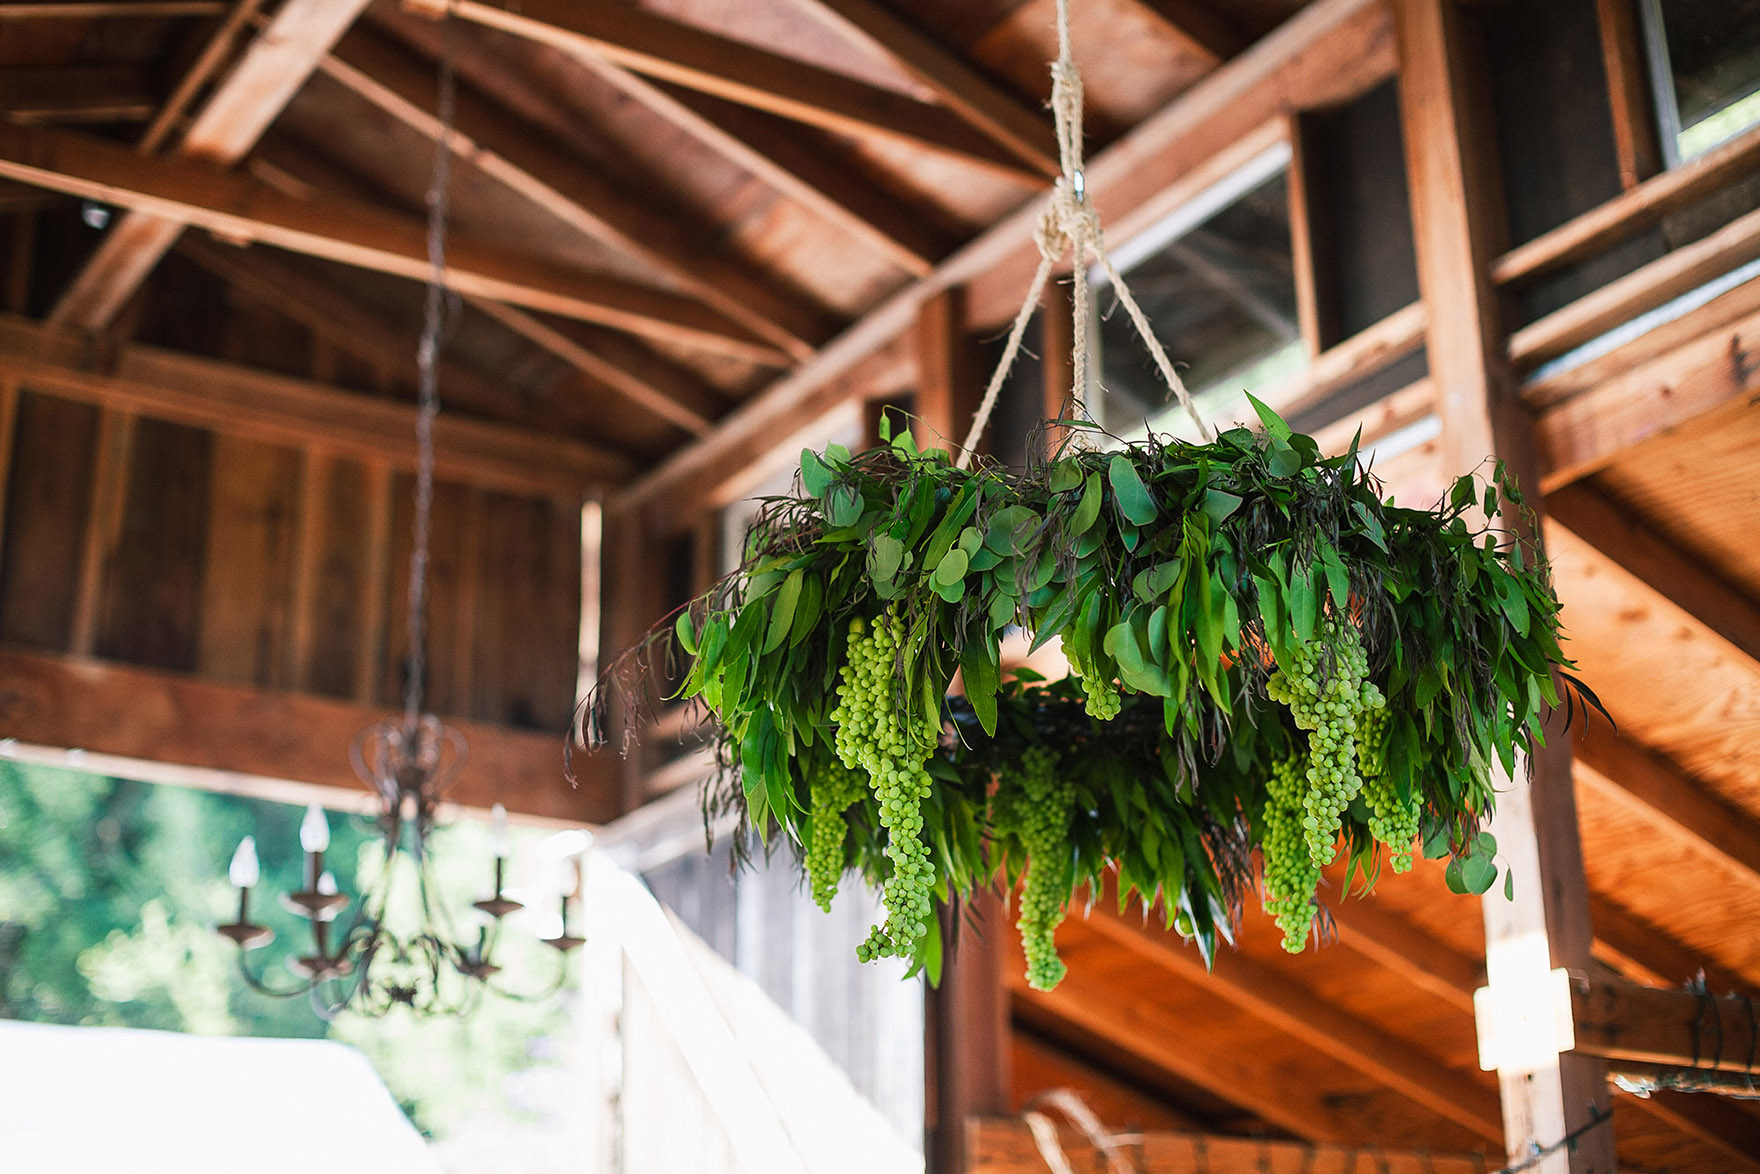 green hanging plants dangle from the rafters inside the barn from the ceiling decor chandelier lights at the wedding reception brides wedding reception redwood ridge estate wedding redwood ridge wedding the perfect santa cruz wedding venue los gatos wedding venue